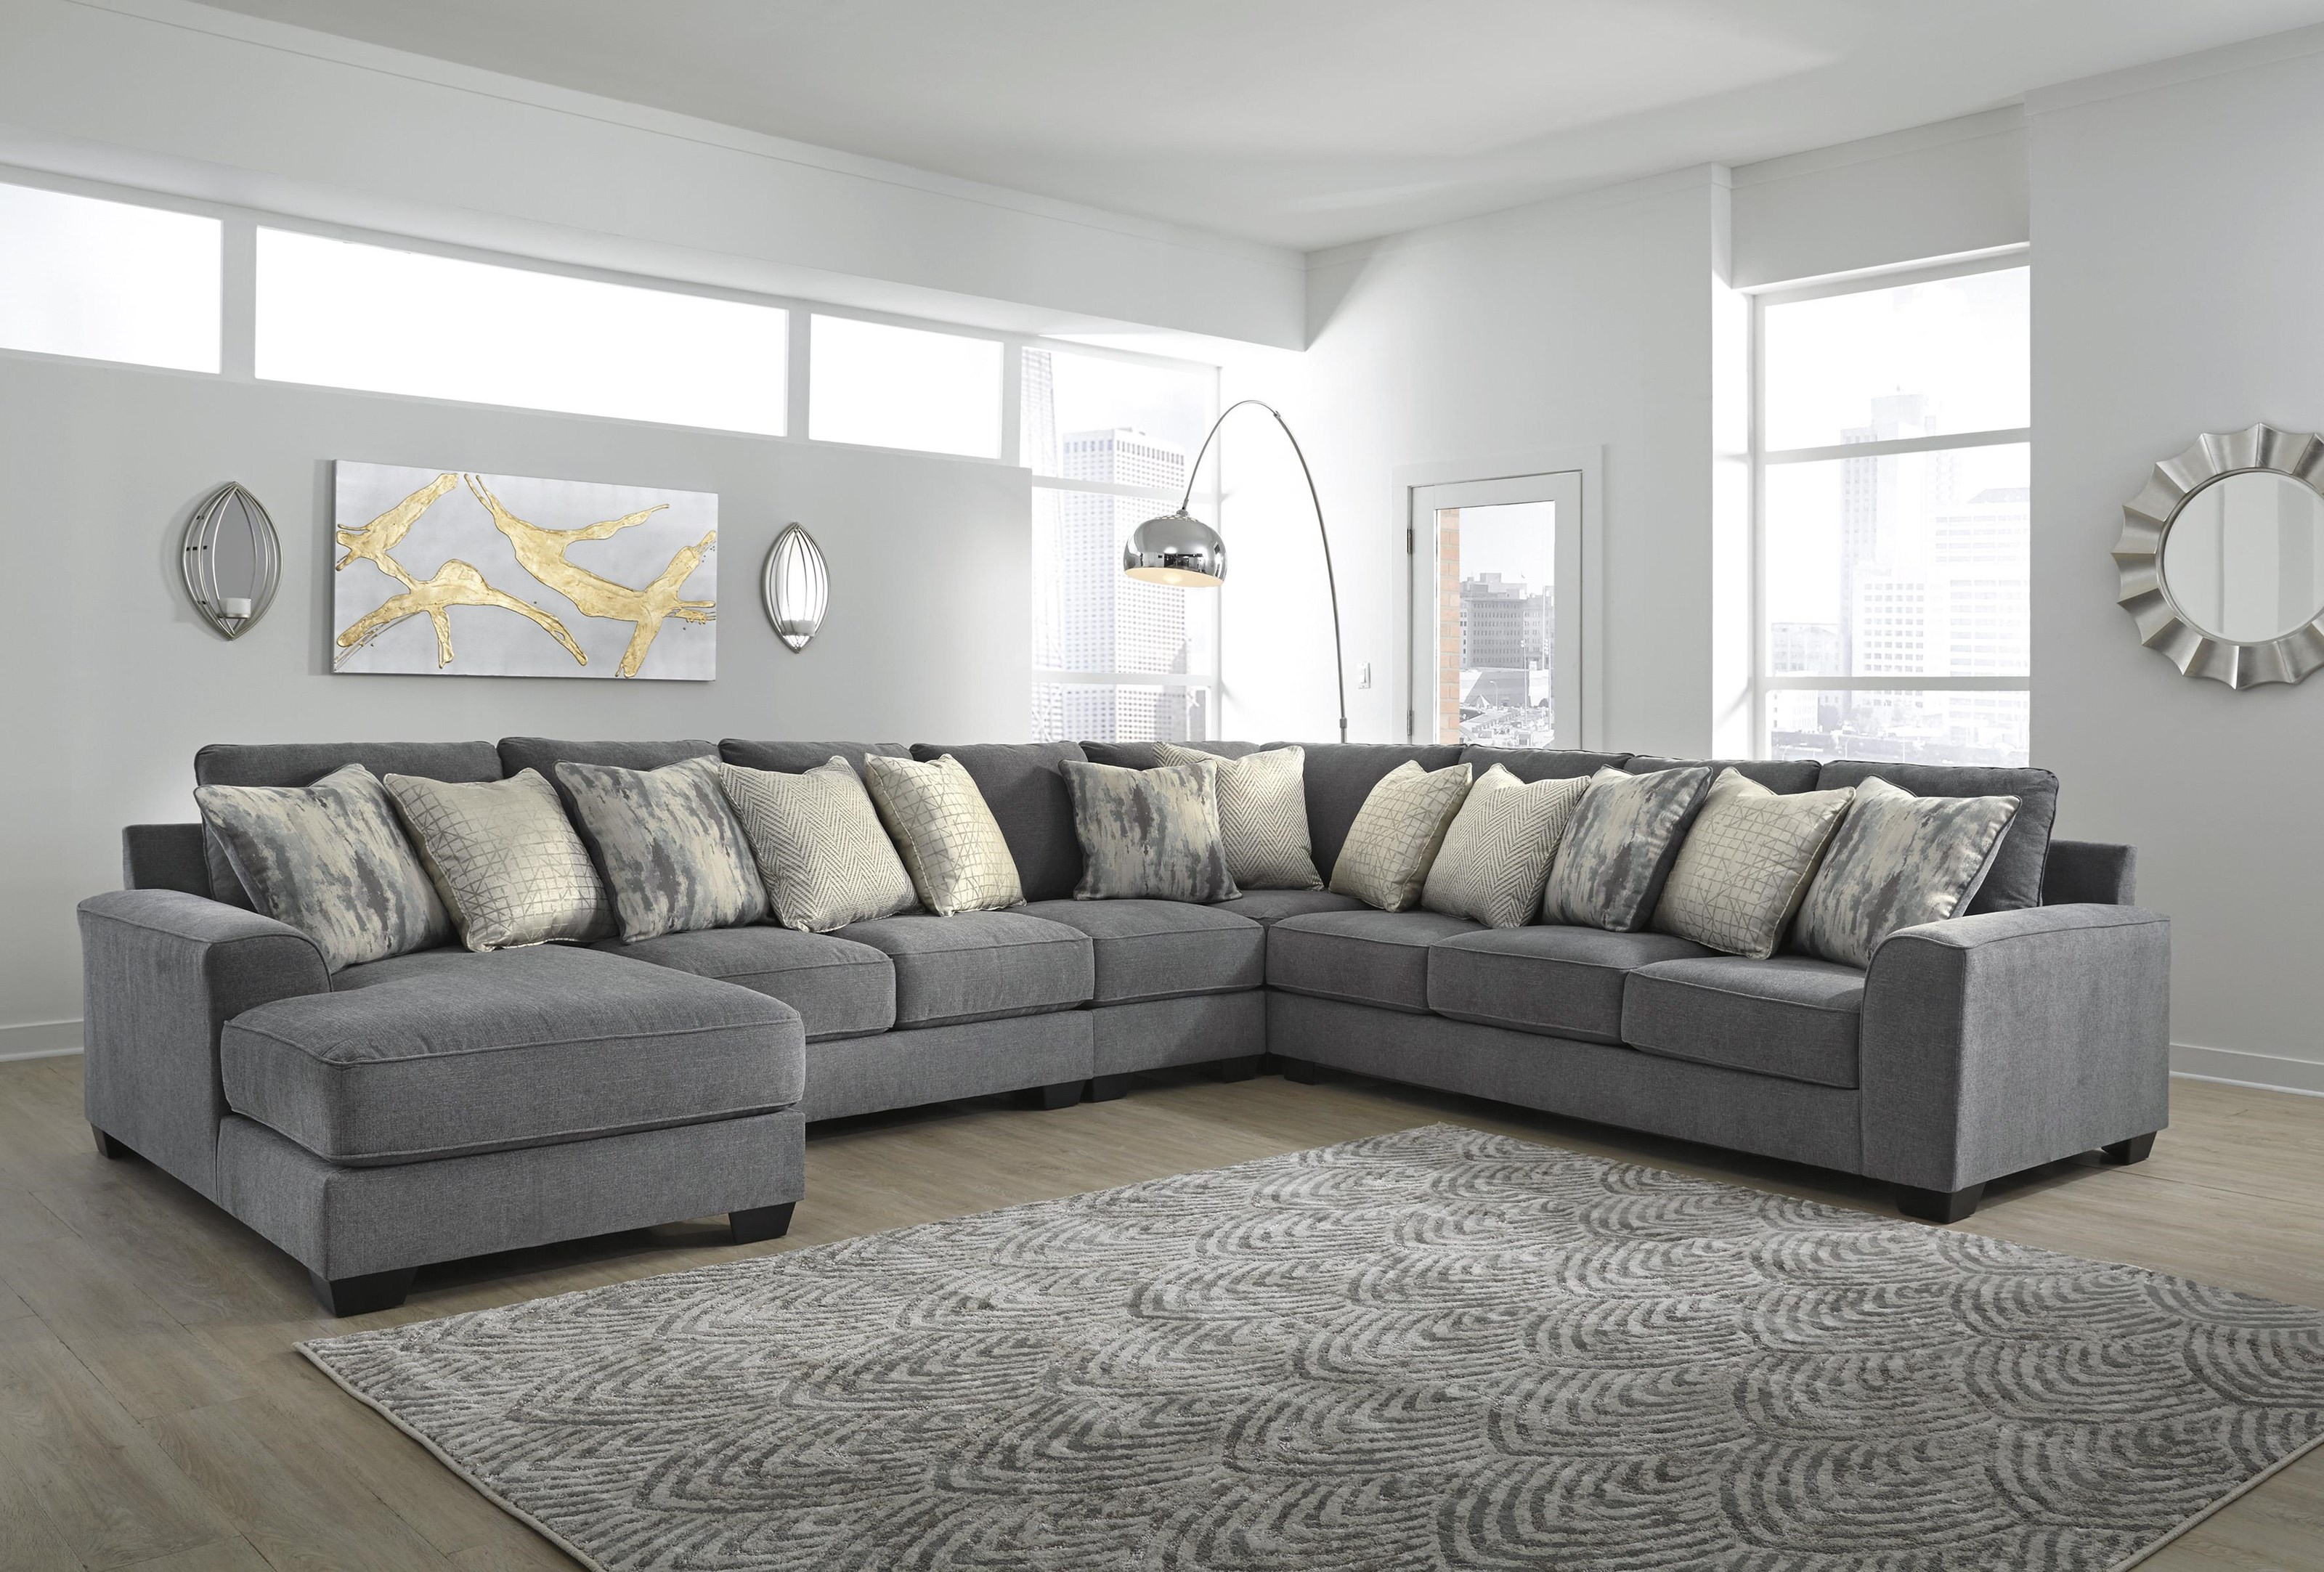 Castano 5 Piece Sectional by Ashley Furniture at Sam Levitz Furniture